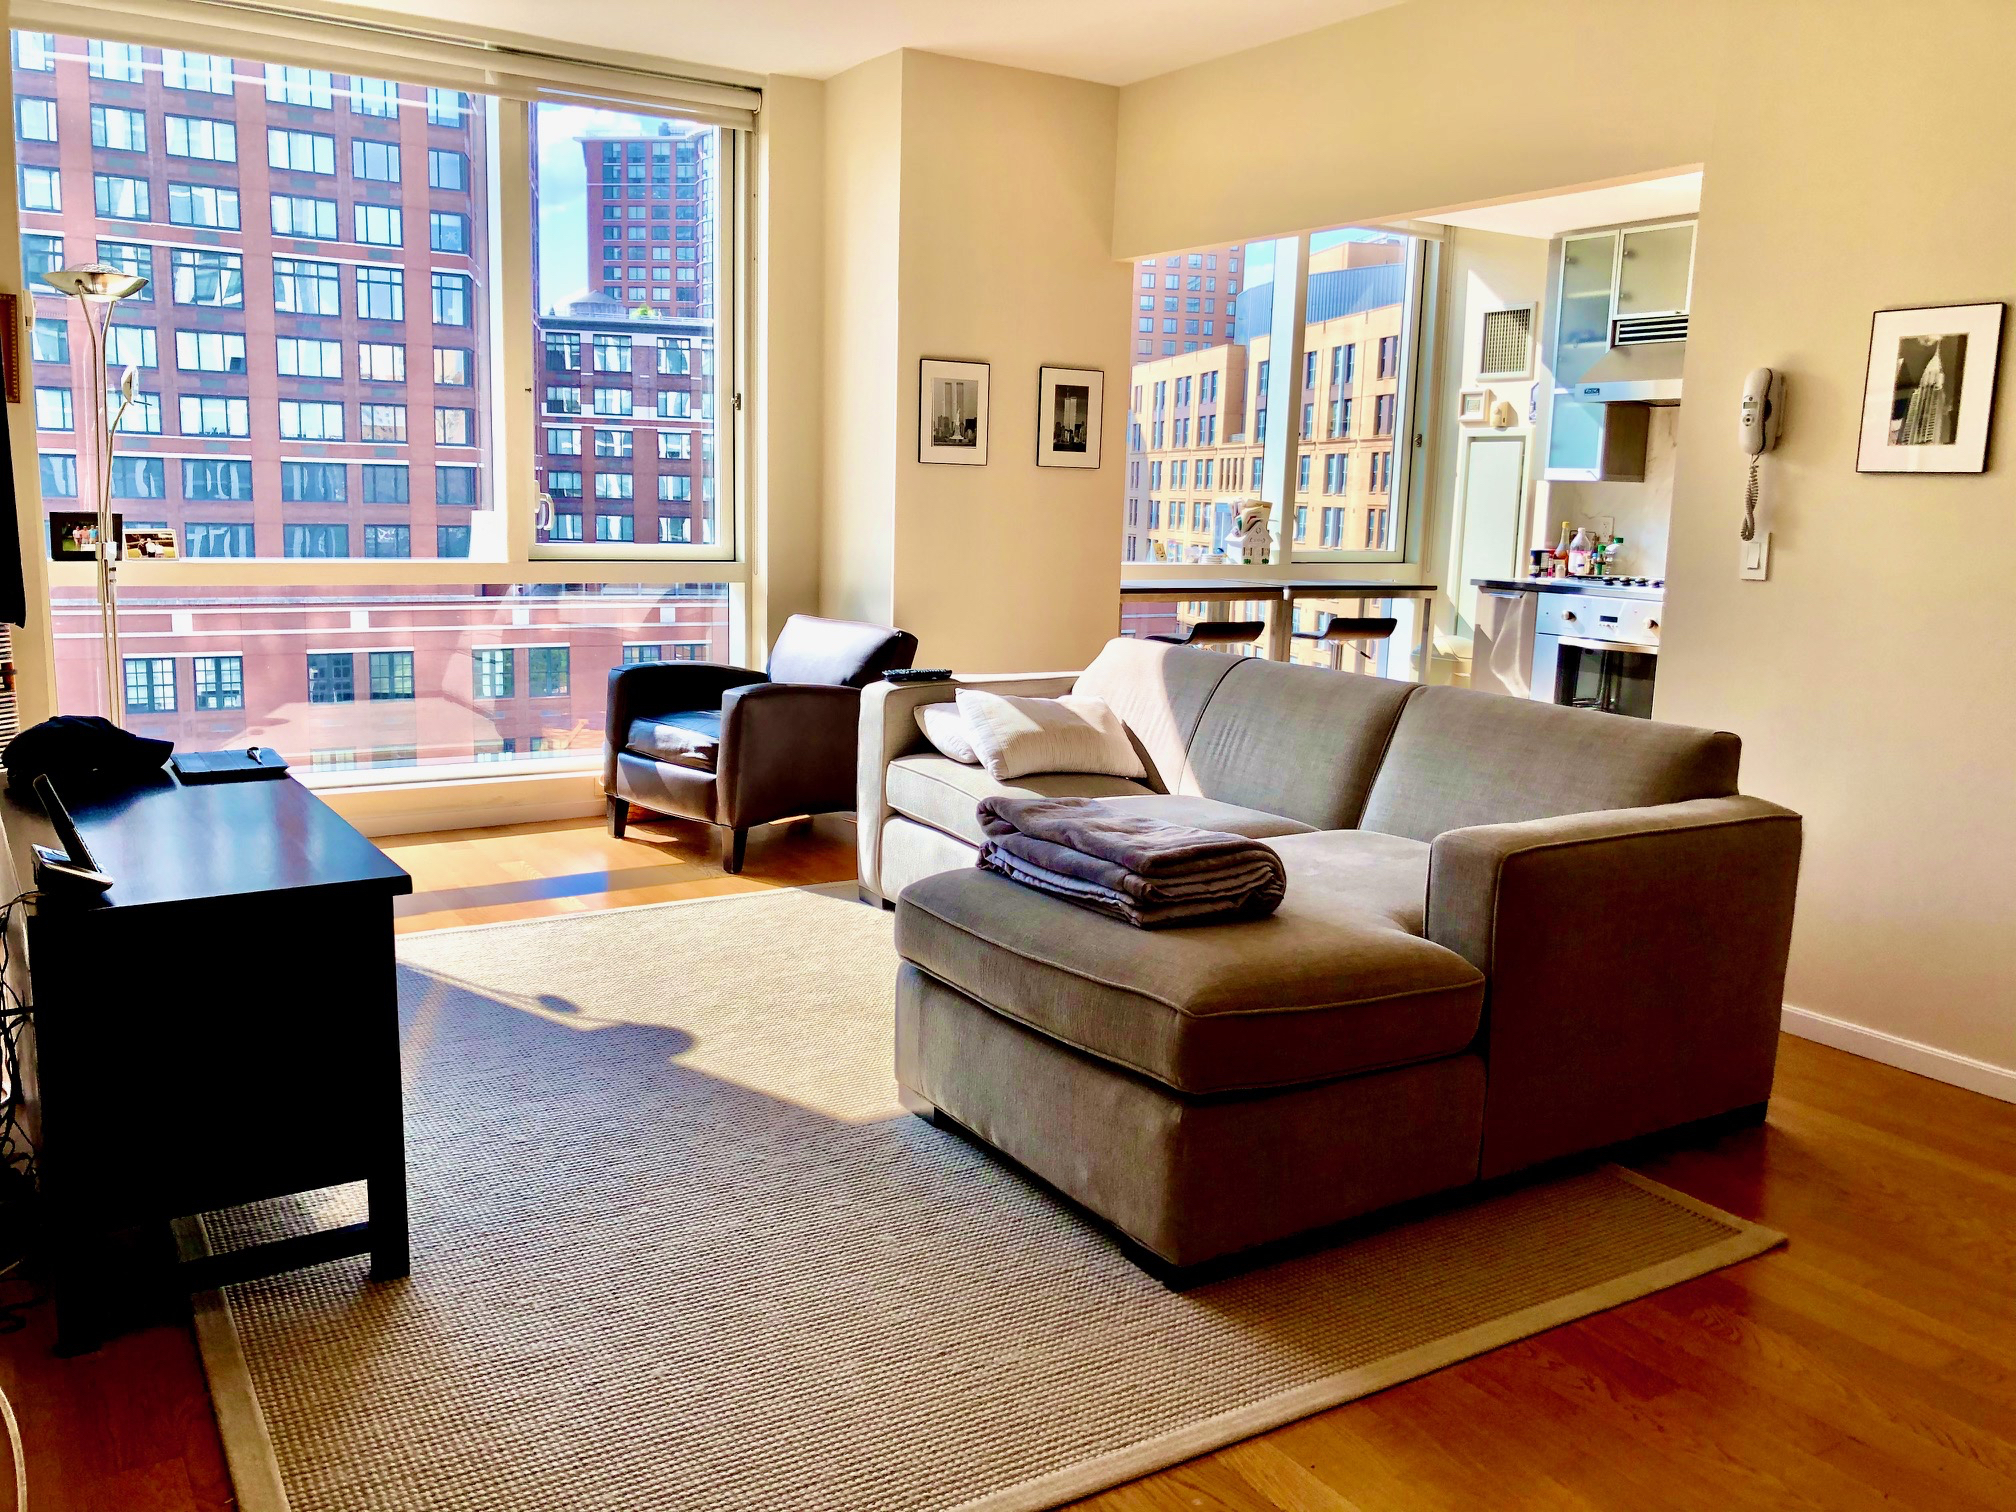 BRAND NEW: Exclusive Full service new development 2bed/2bath rental in the heart of Tribeca available September 1st. Building amenities include Pool, Gym, Garage, 24hr. concierge. Top of the line kitchen, bathrooms, washer-dryer in apartment…Will go fast! High-end luxury address! Apartment Features : West, Washer/Dryer Building Features : Courtyard, Garden, Roof Deck, PrivStorage, CentralLaundry, VideoSecurity, Guard, Pool, HealthClub